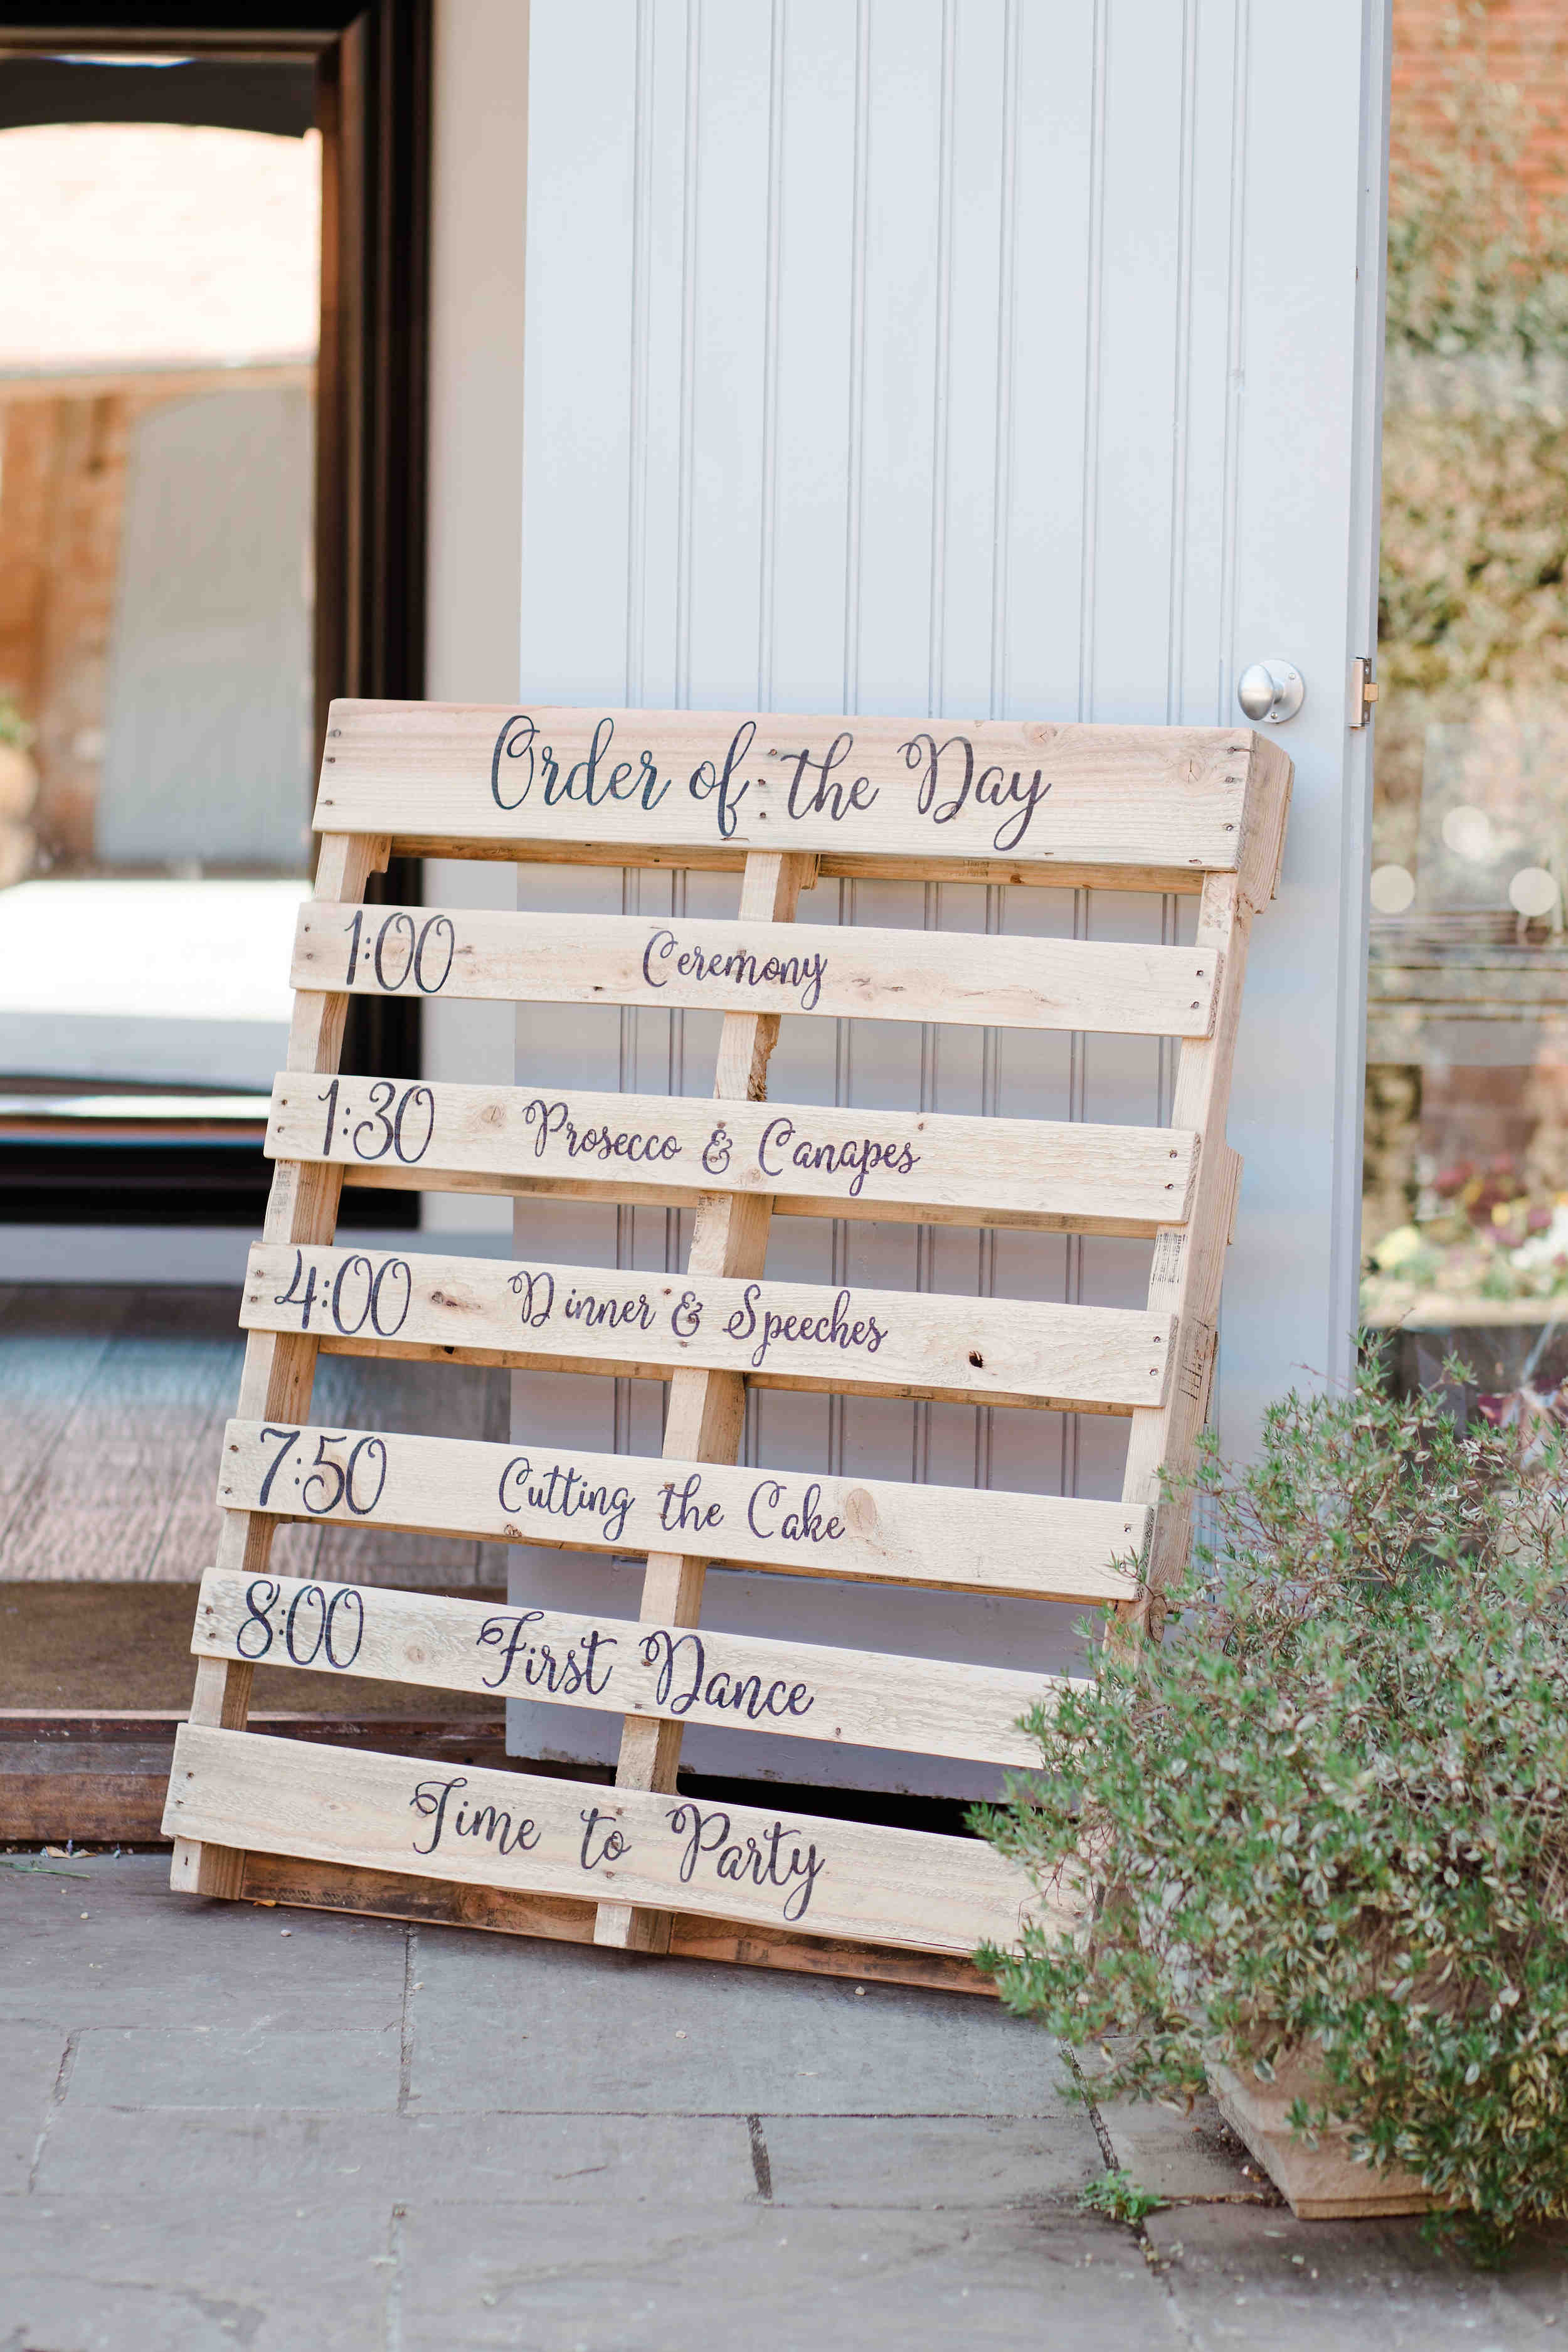 order of the day on wooden pallet diy wedding swallows nest barn